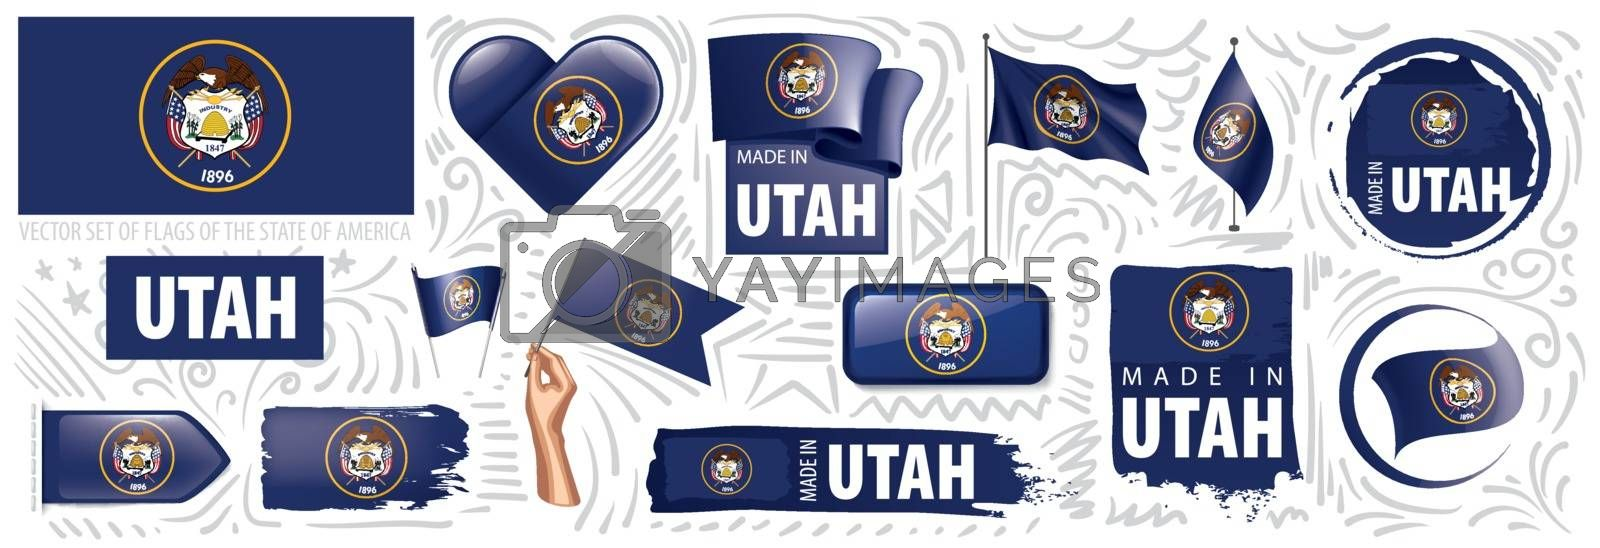 Vector set of flags of the American state of Utah in different designs.